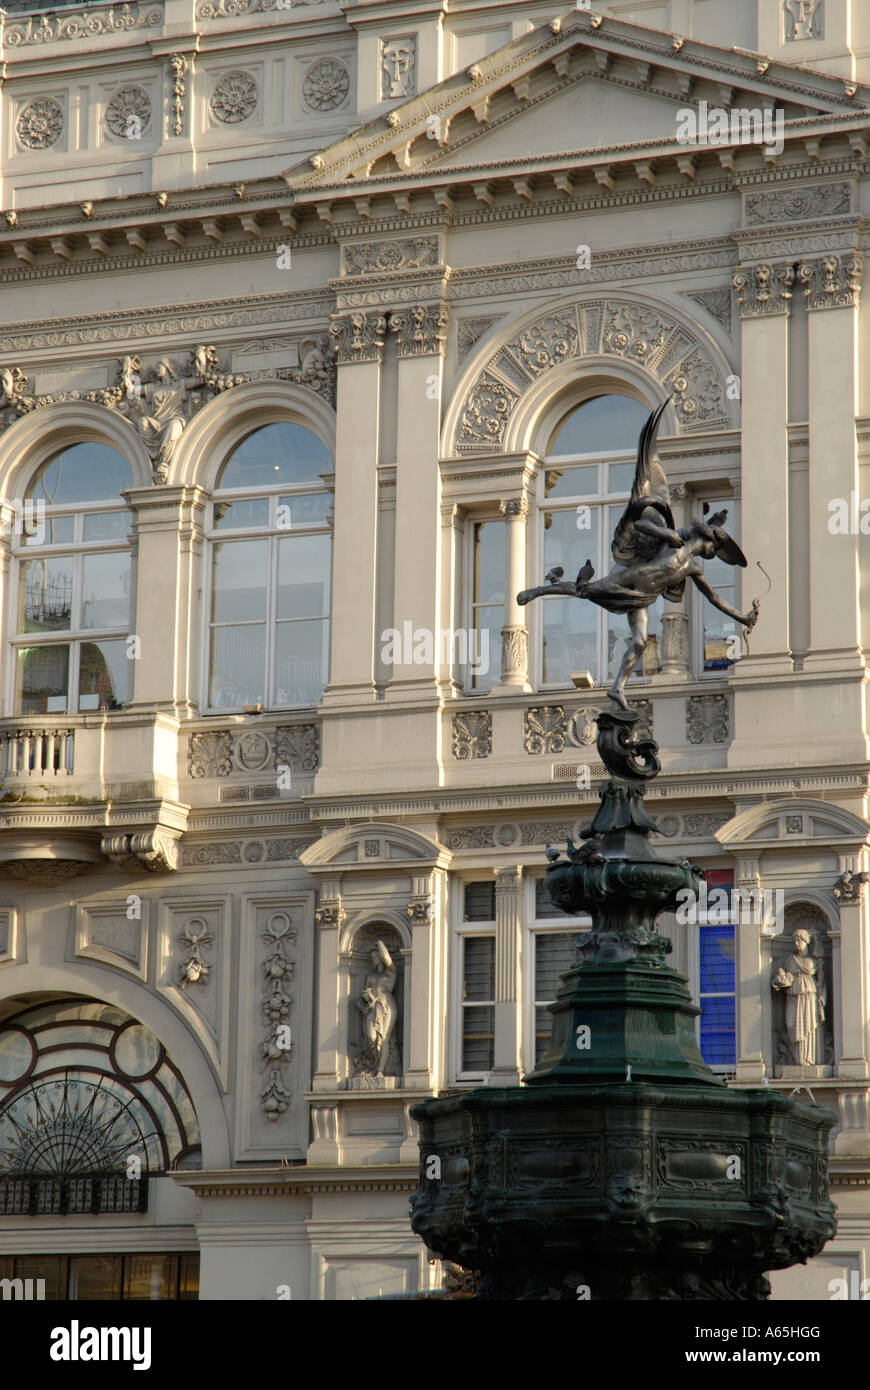 Statue of Eros seen against the architecture of ornate white Victorian buildings in Piccadilly Circus London England - Stock Image